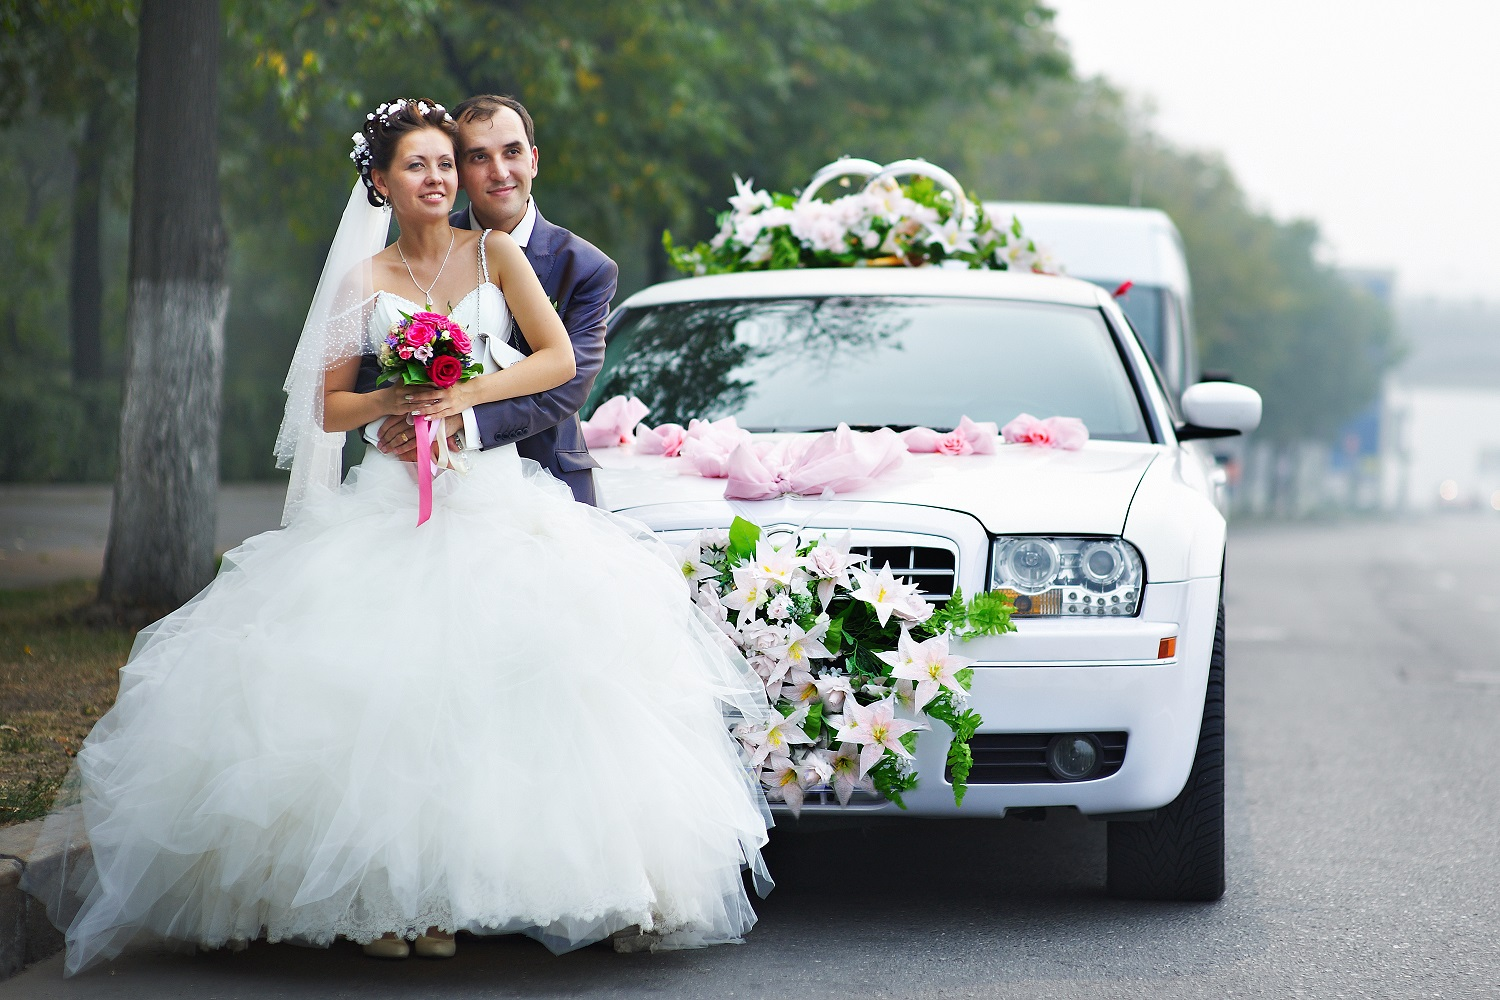 Travel In Luxury - You will travel in our luxury stretch wedding limousine and We roll out the red carpet after the ceremony.